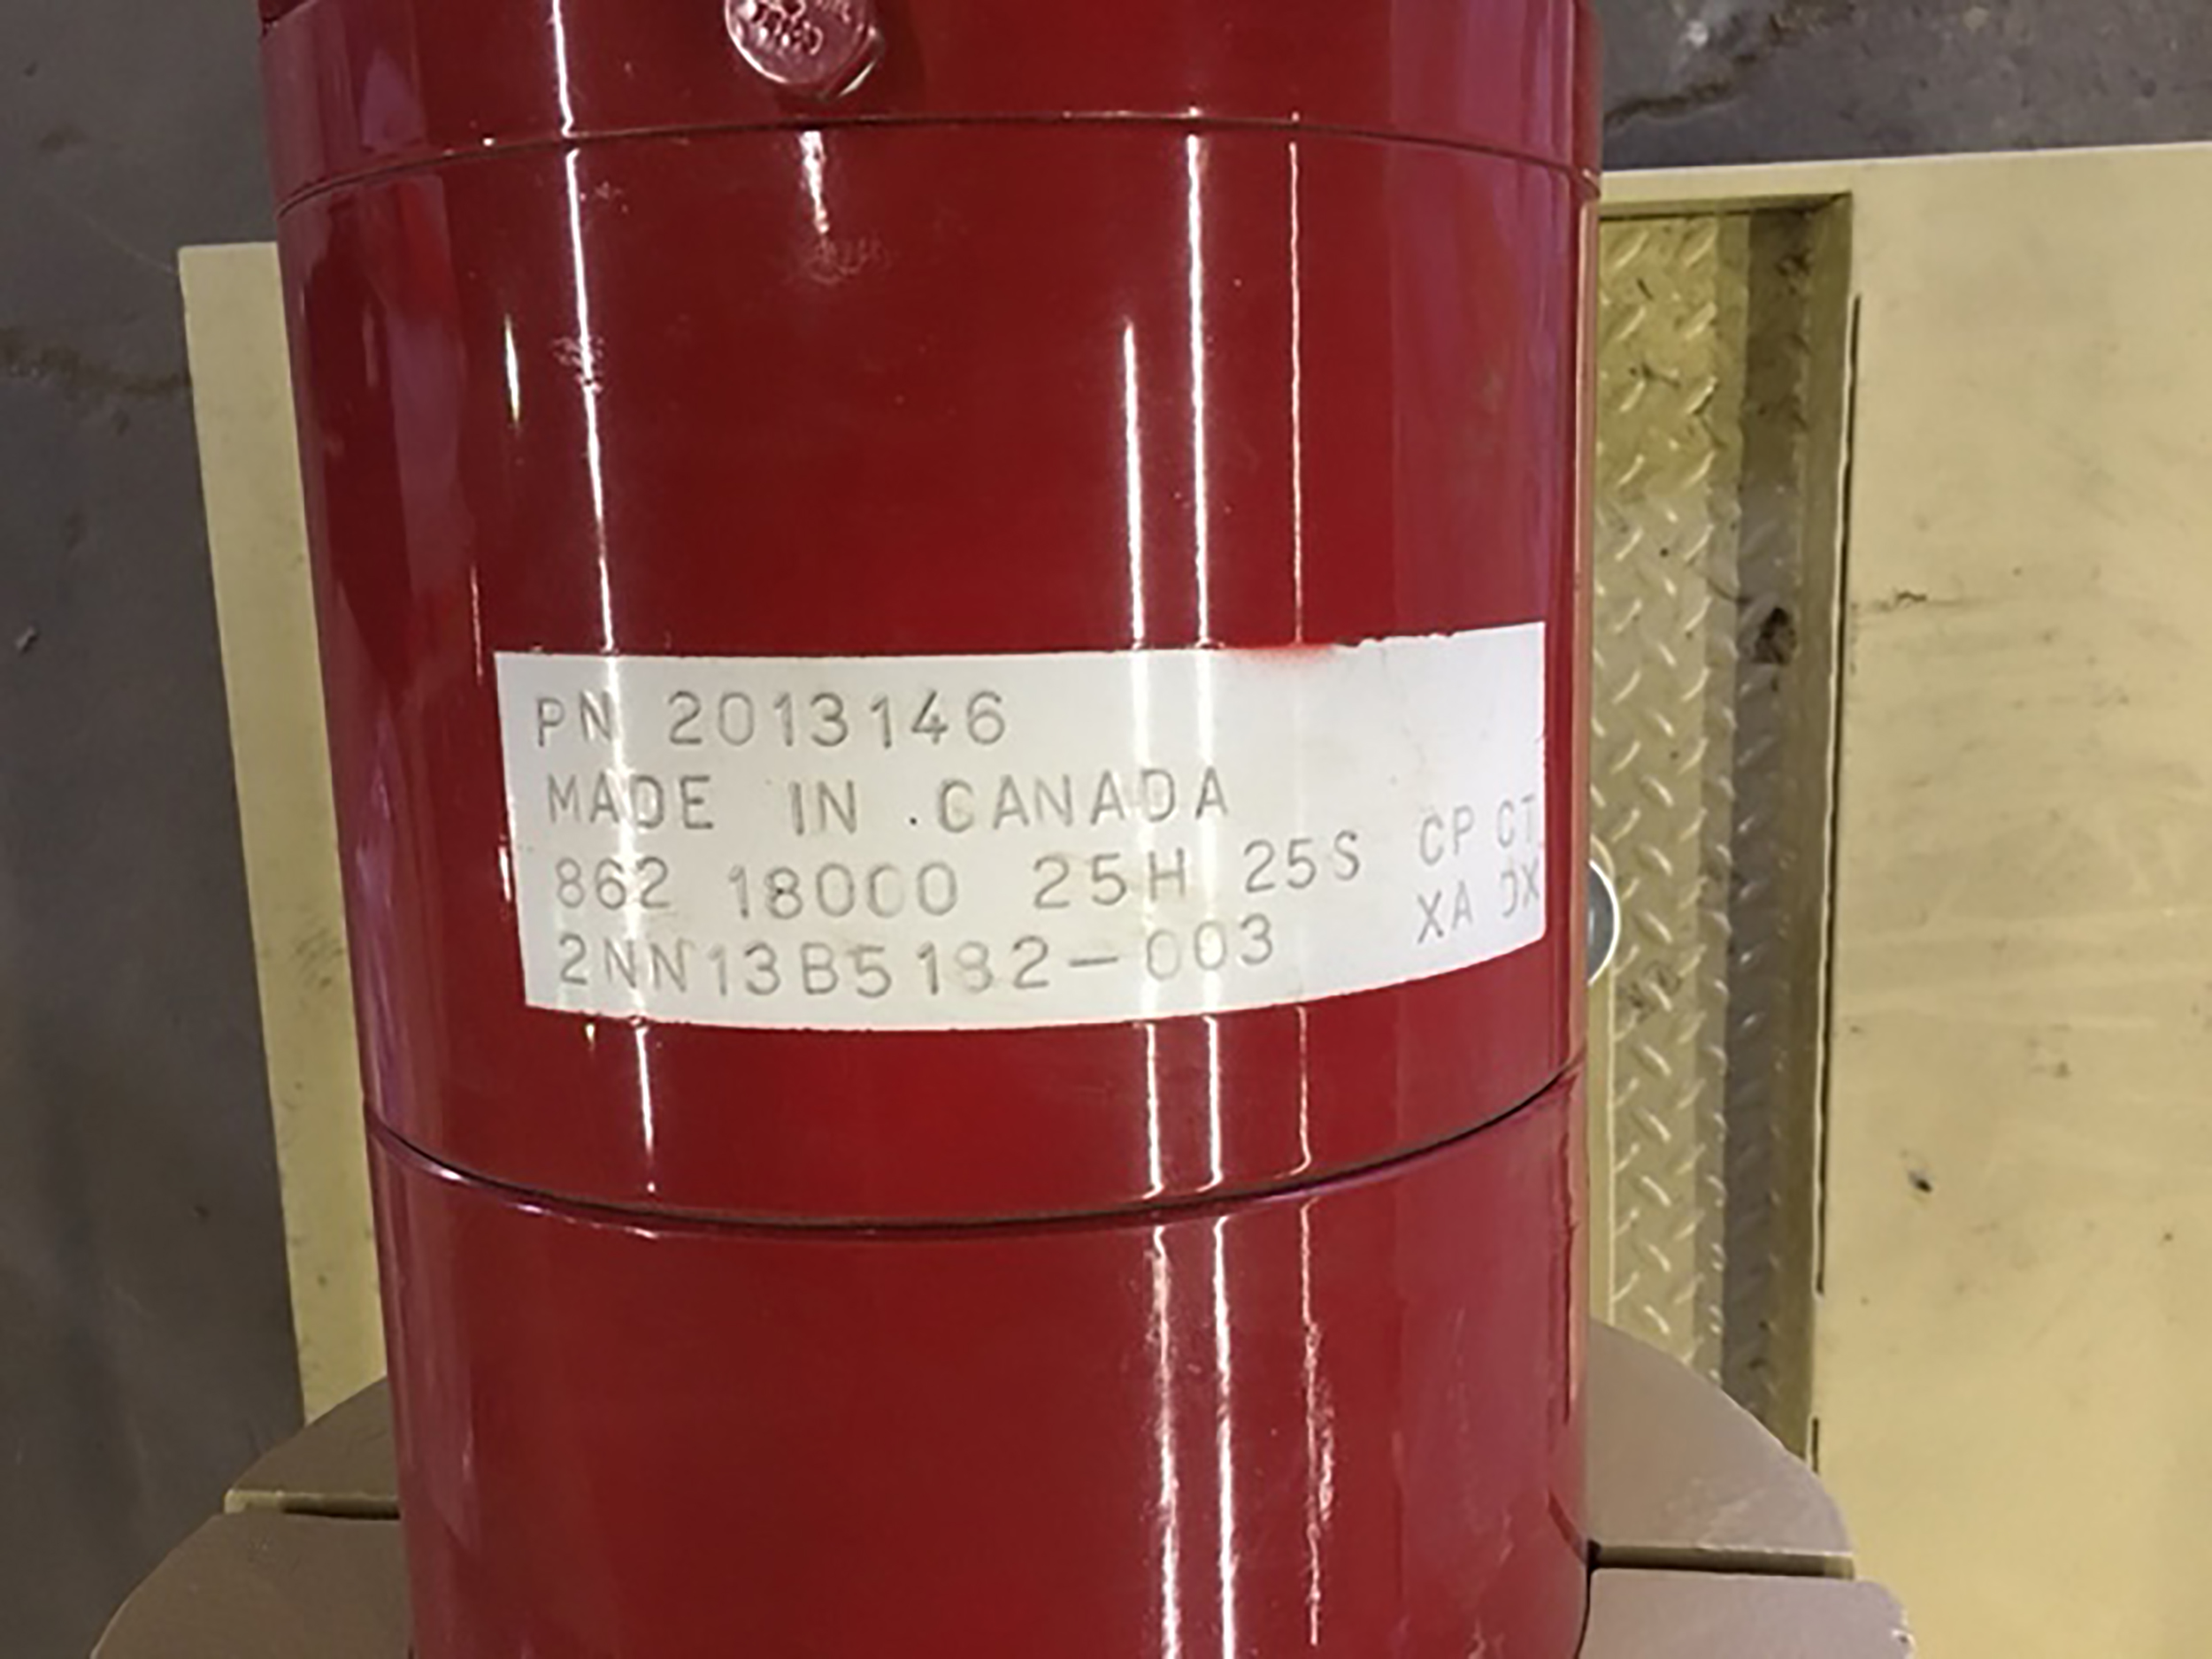 Borets name plate - Never used –Two (2x) 700HP Centrifugal Multi-stage Bare Borets Pumps & Motors + Full Packaging Option for sale in Edmonton Alberta